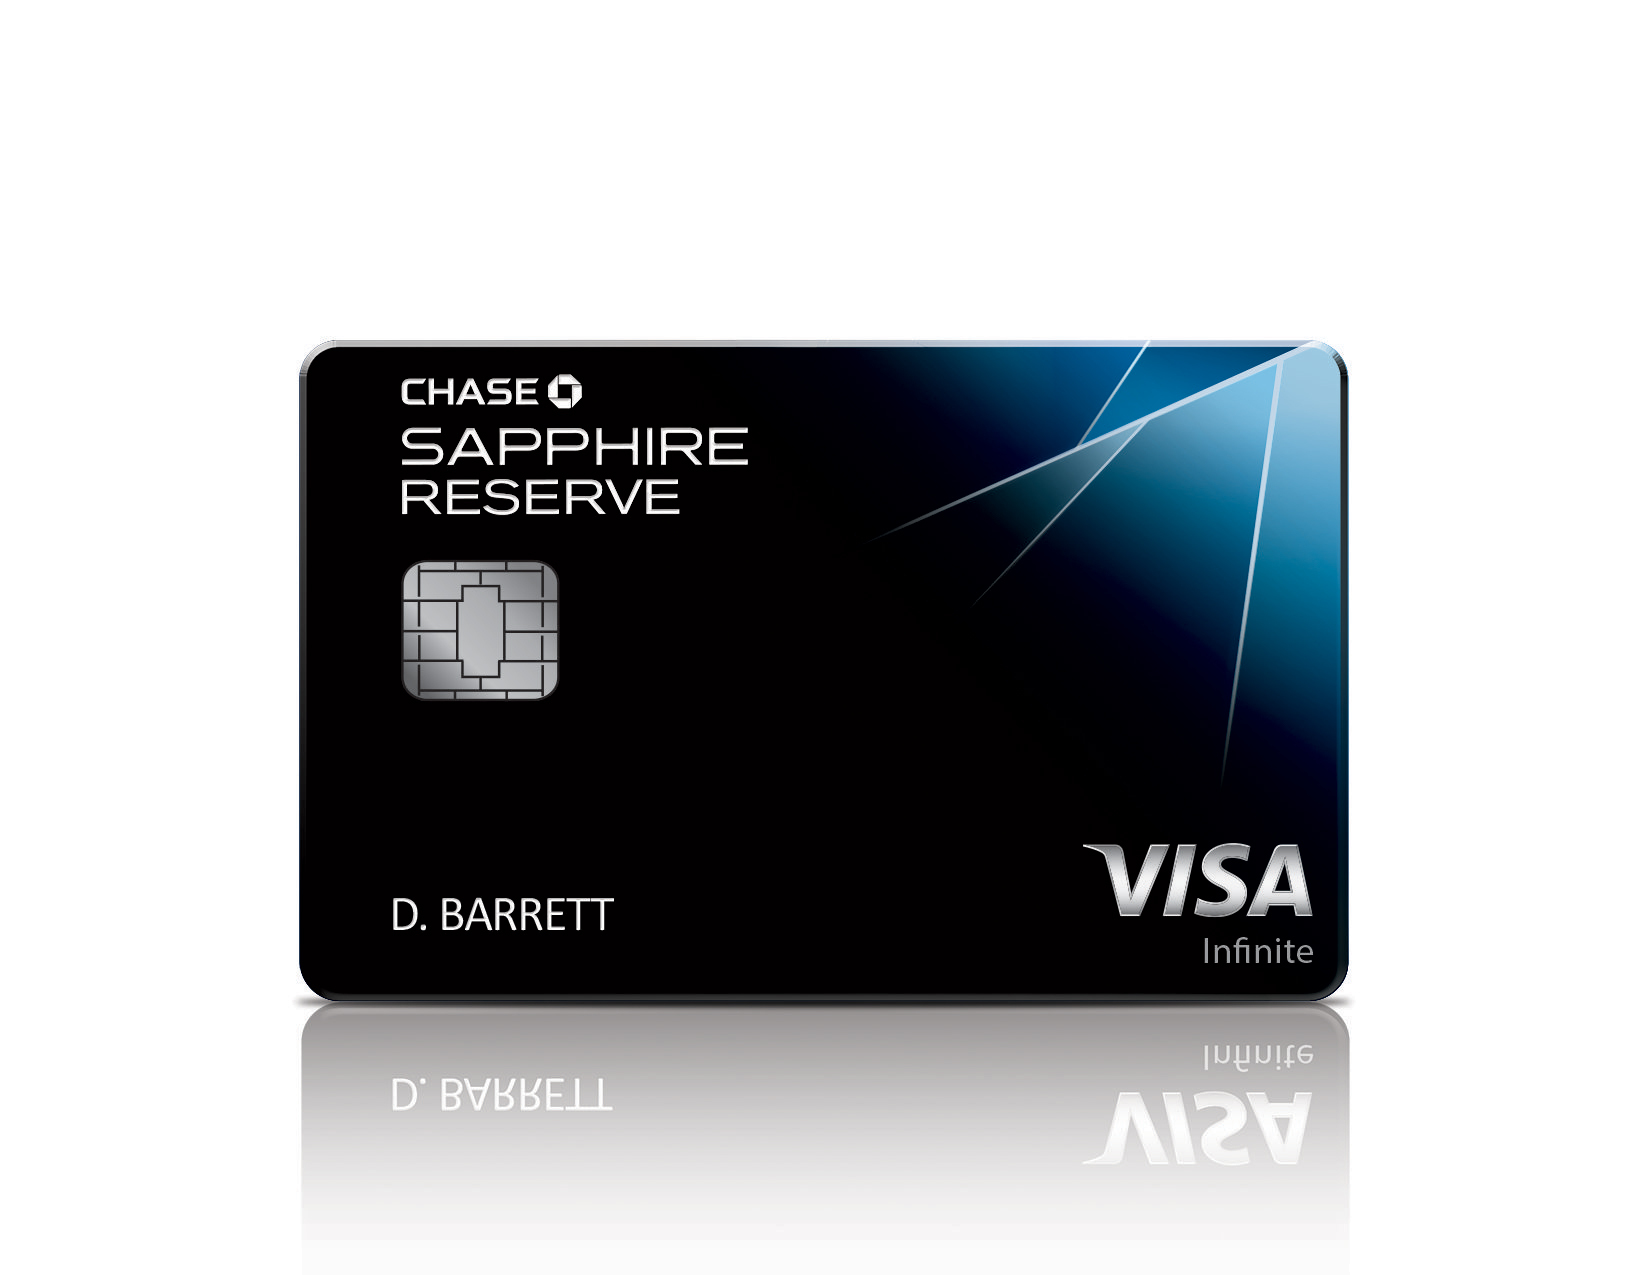 Chase Reinvents Luxury Credit Card Category with Sapphire Reserve ...